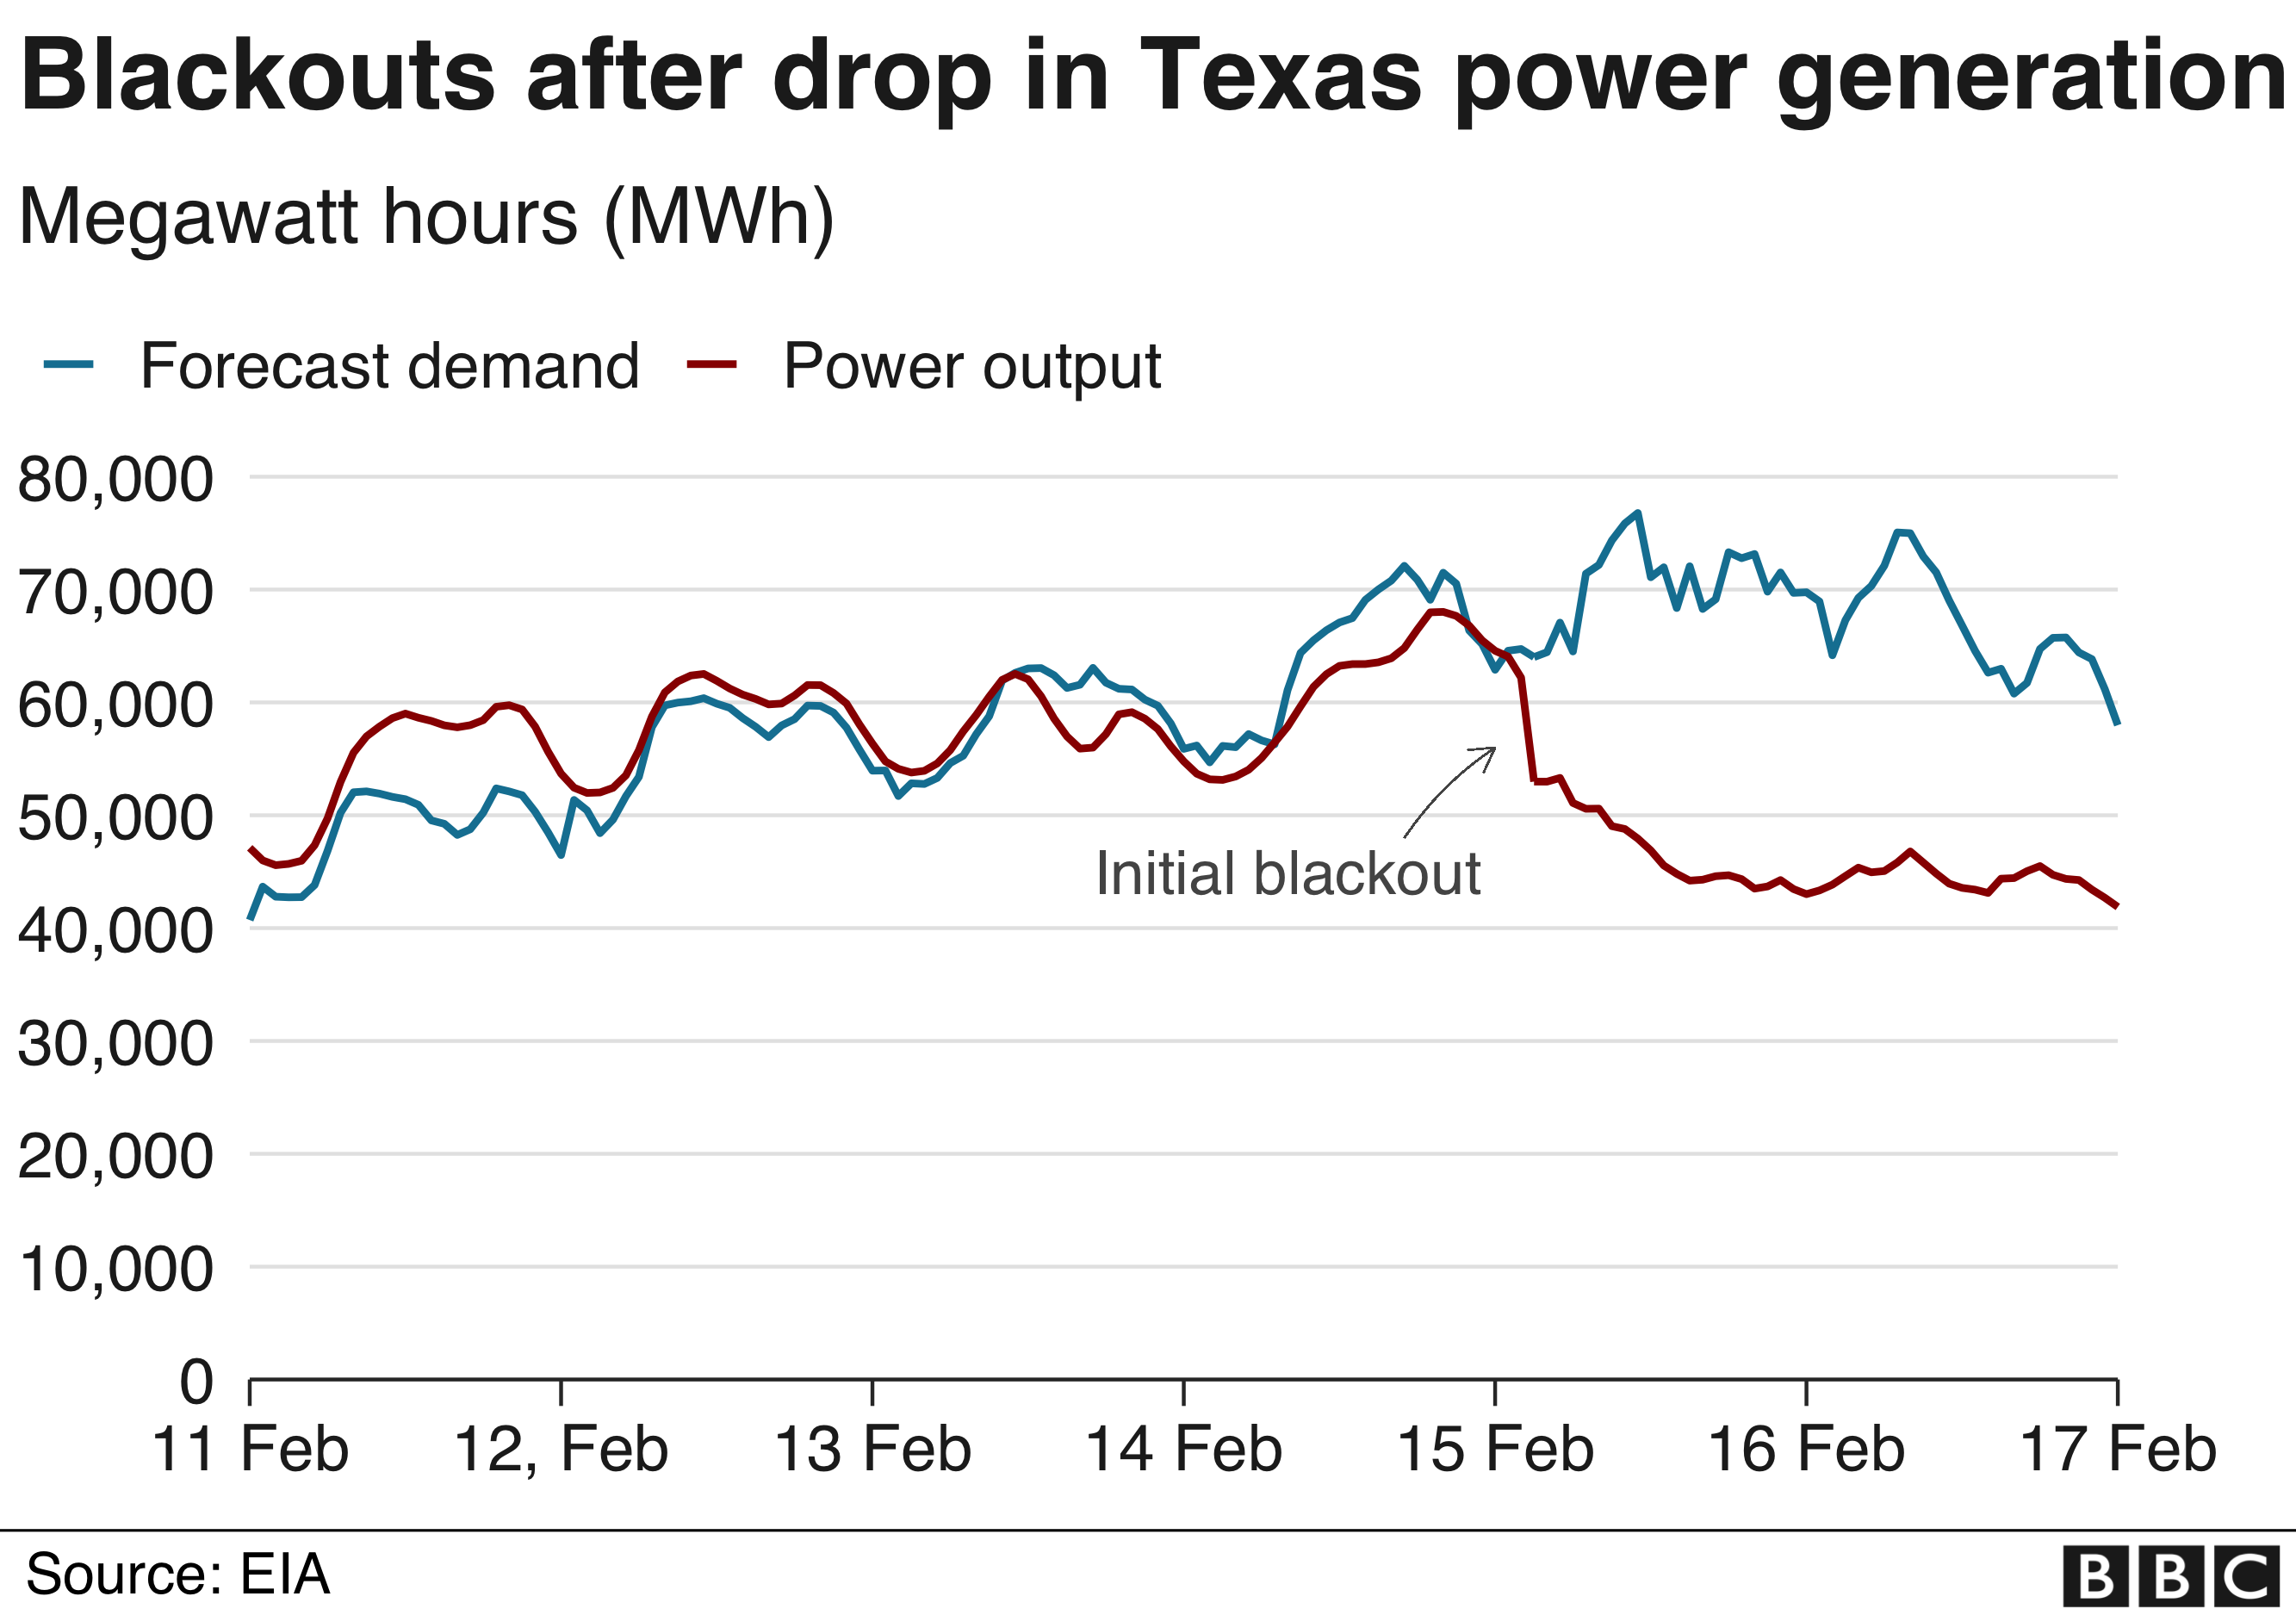 Texas blackouts after storm hit